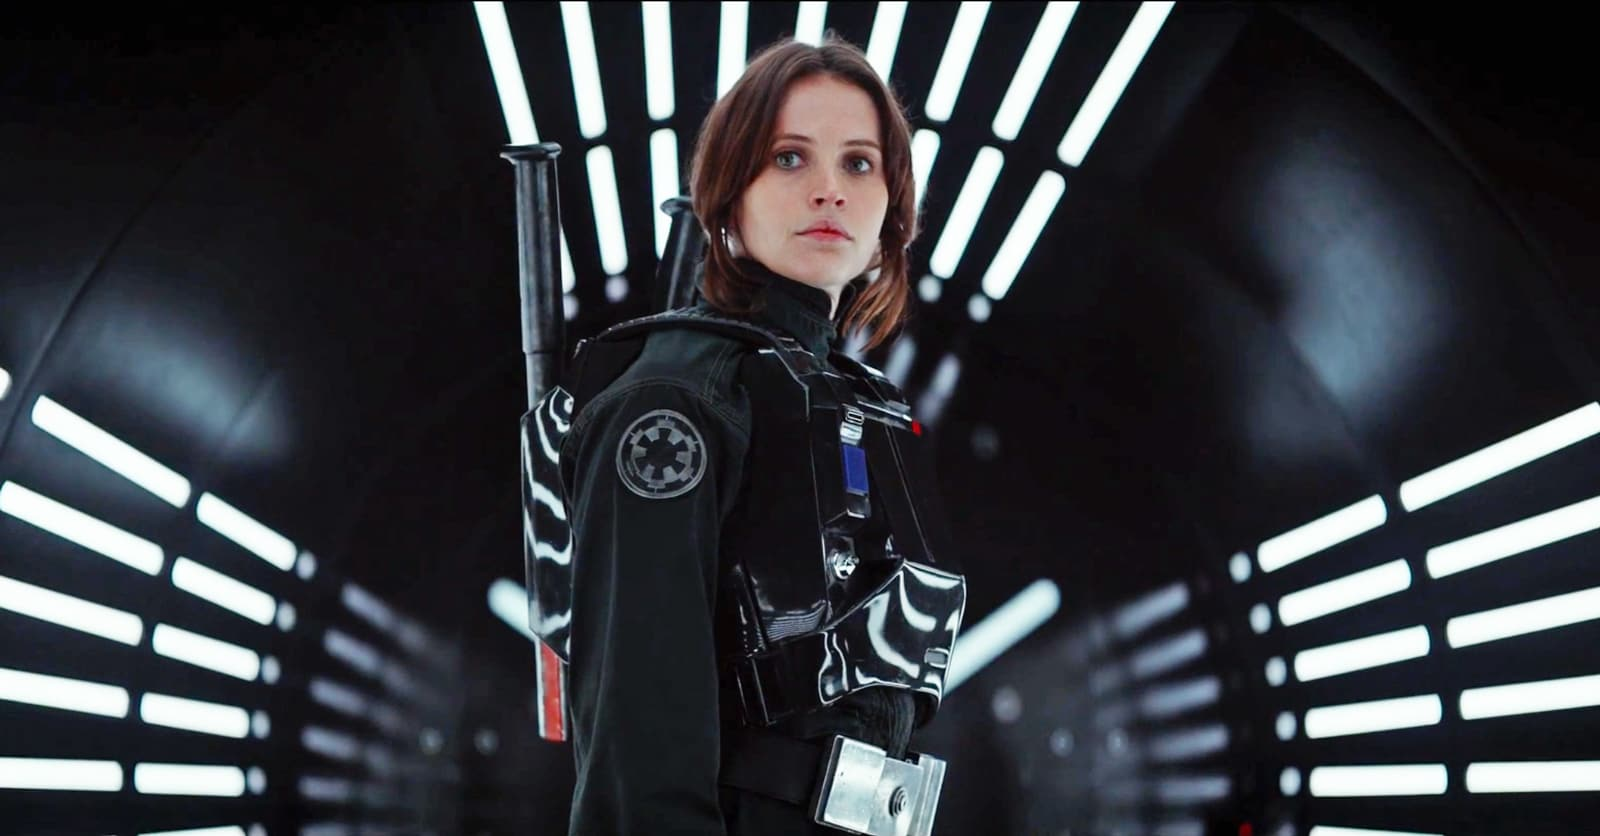 star wars rogue one deleted trailer scene jyn erso